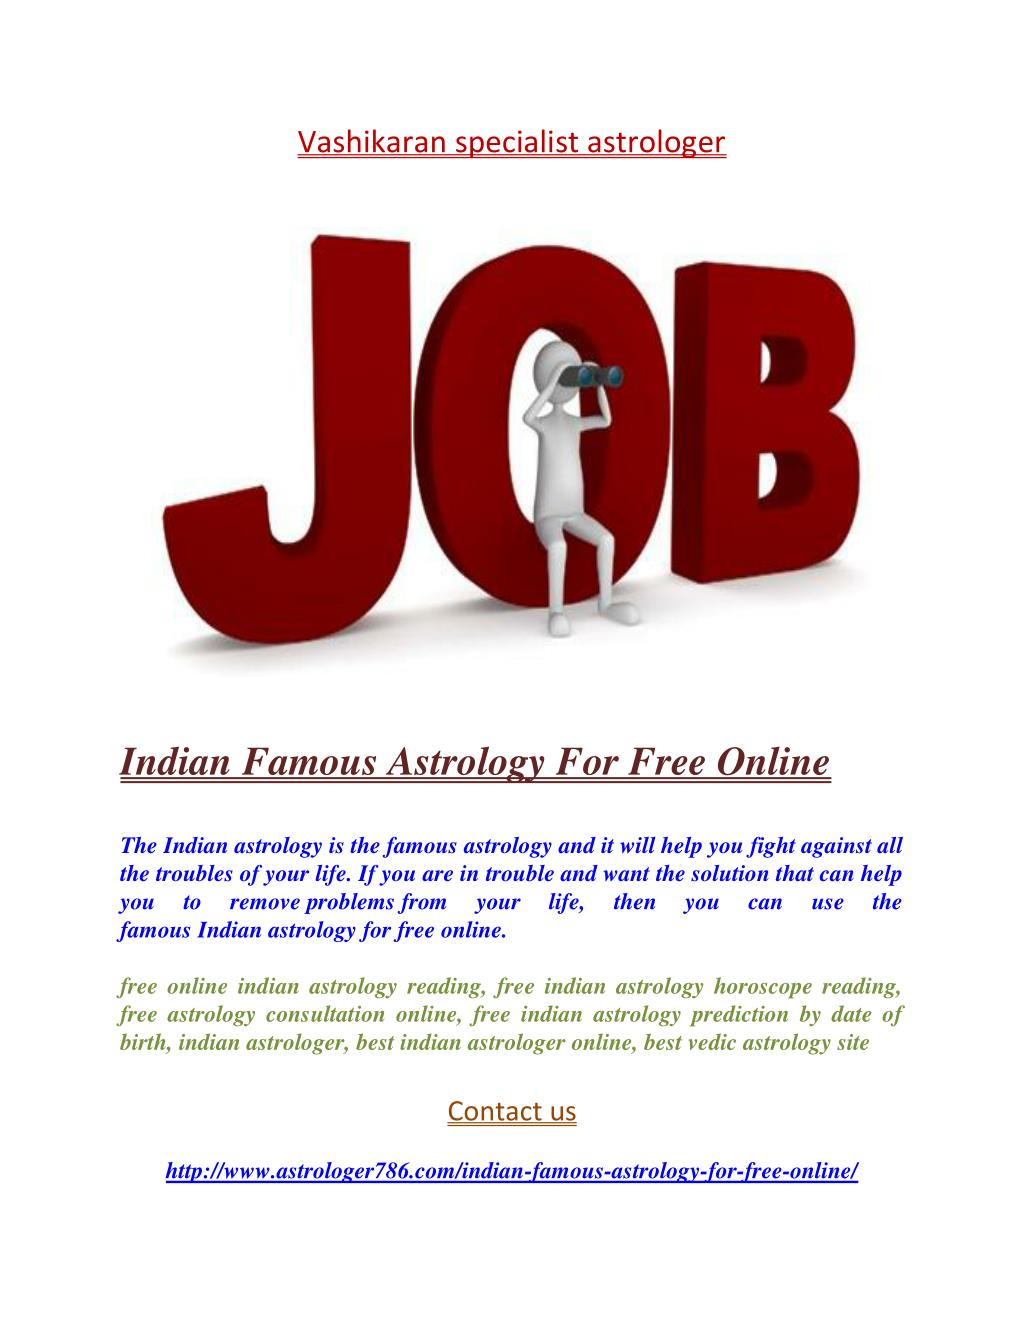 PPT - Indian Famous Astrology For Free Online PowerPoint